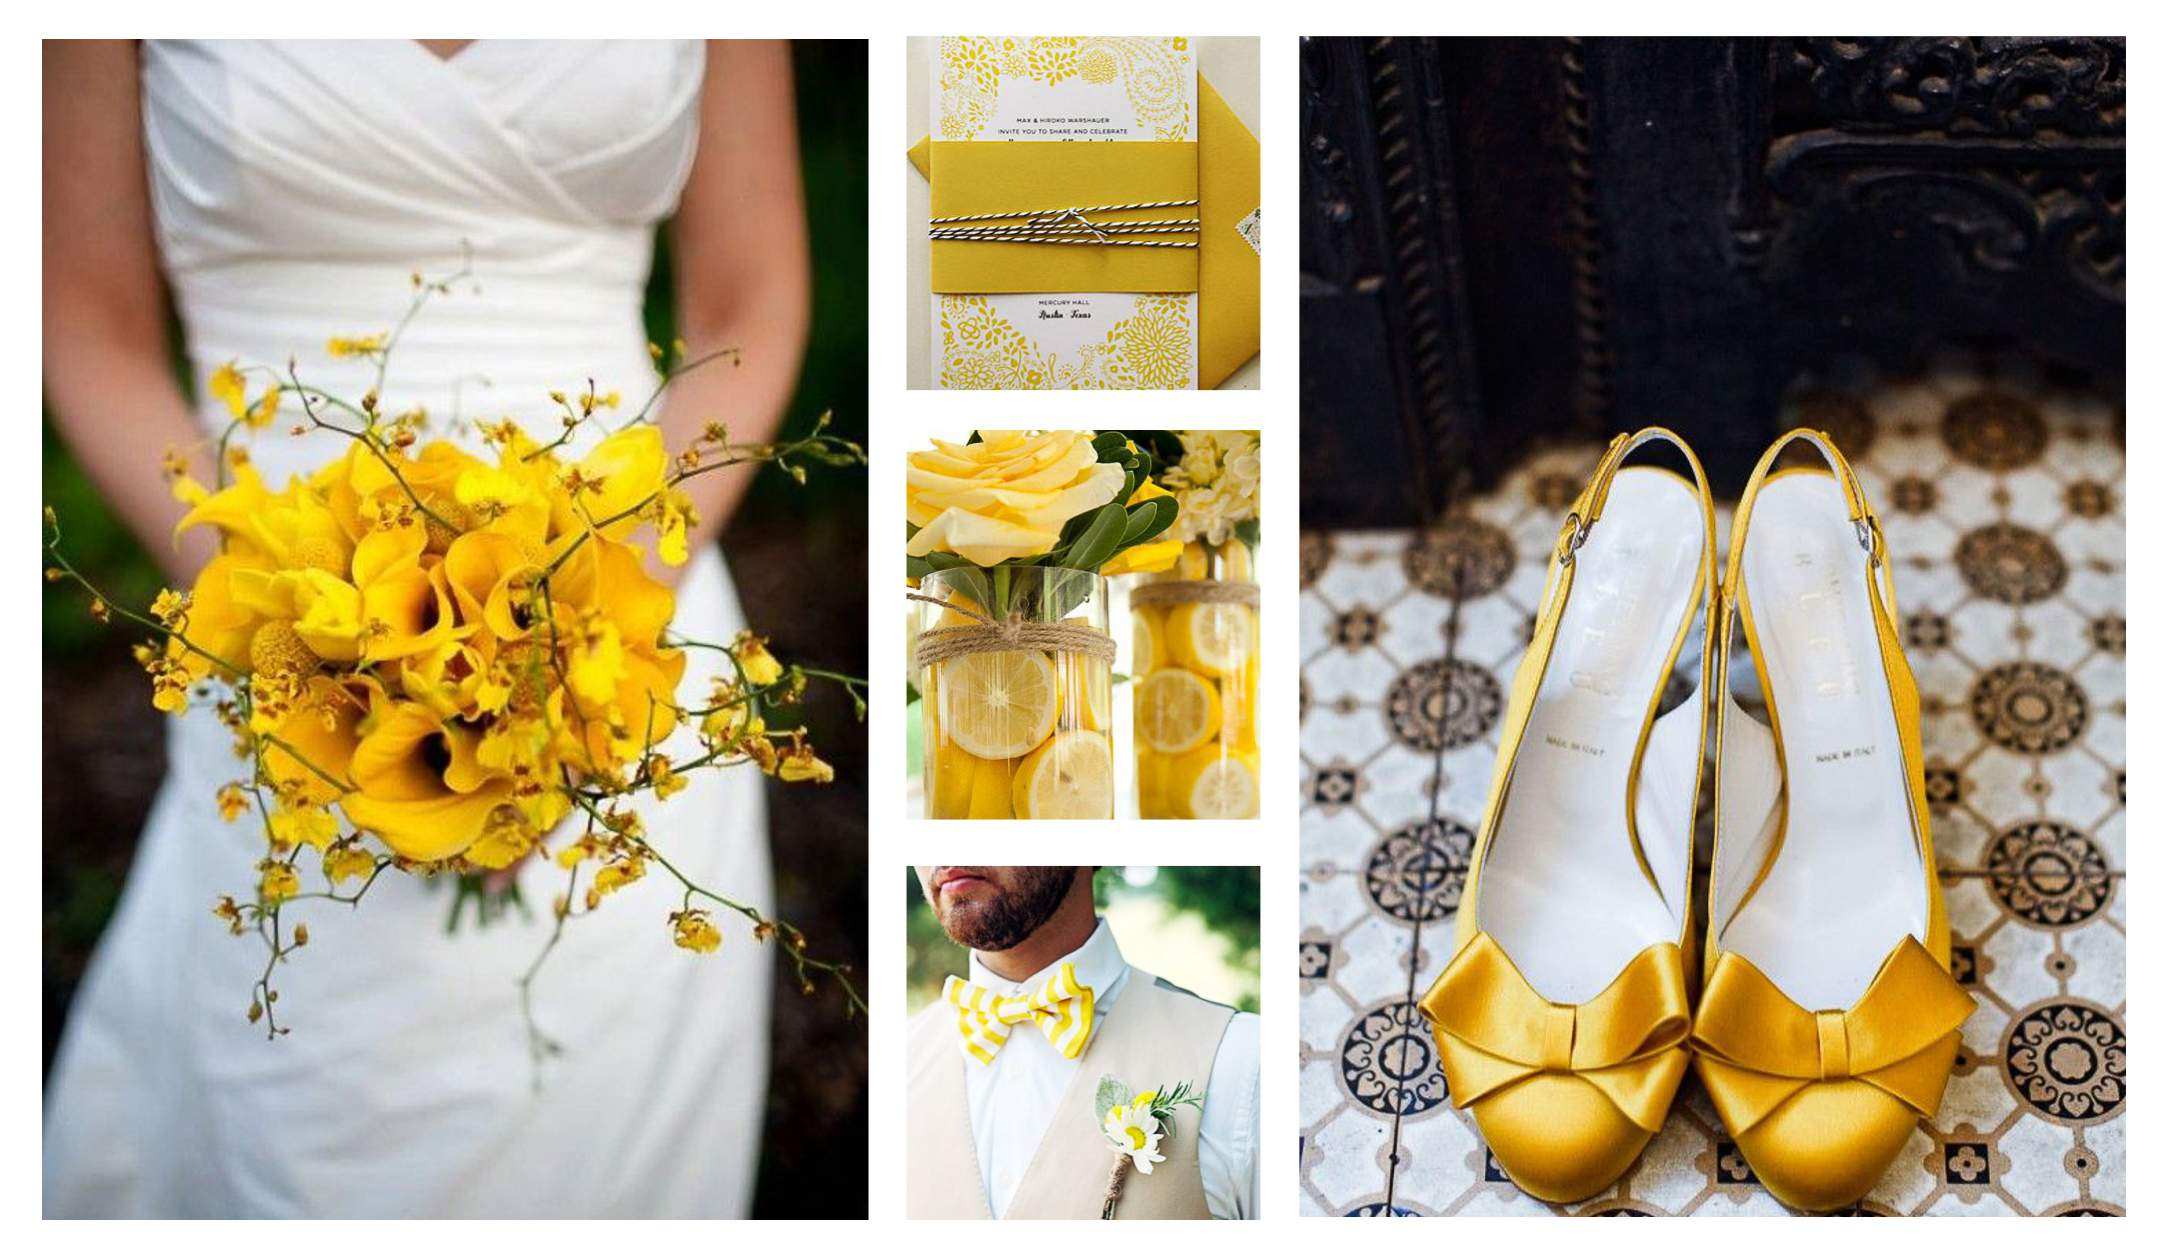 Matrimonio In Giallo : Matrimonio in giallo patch wedding